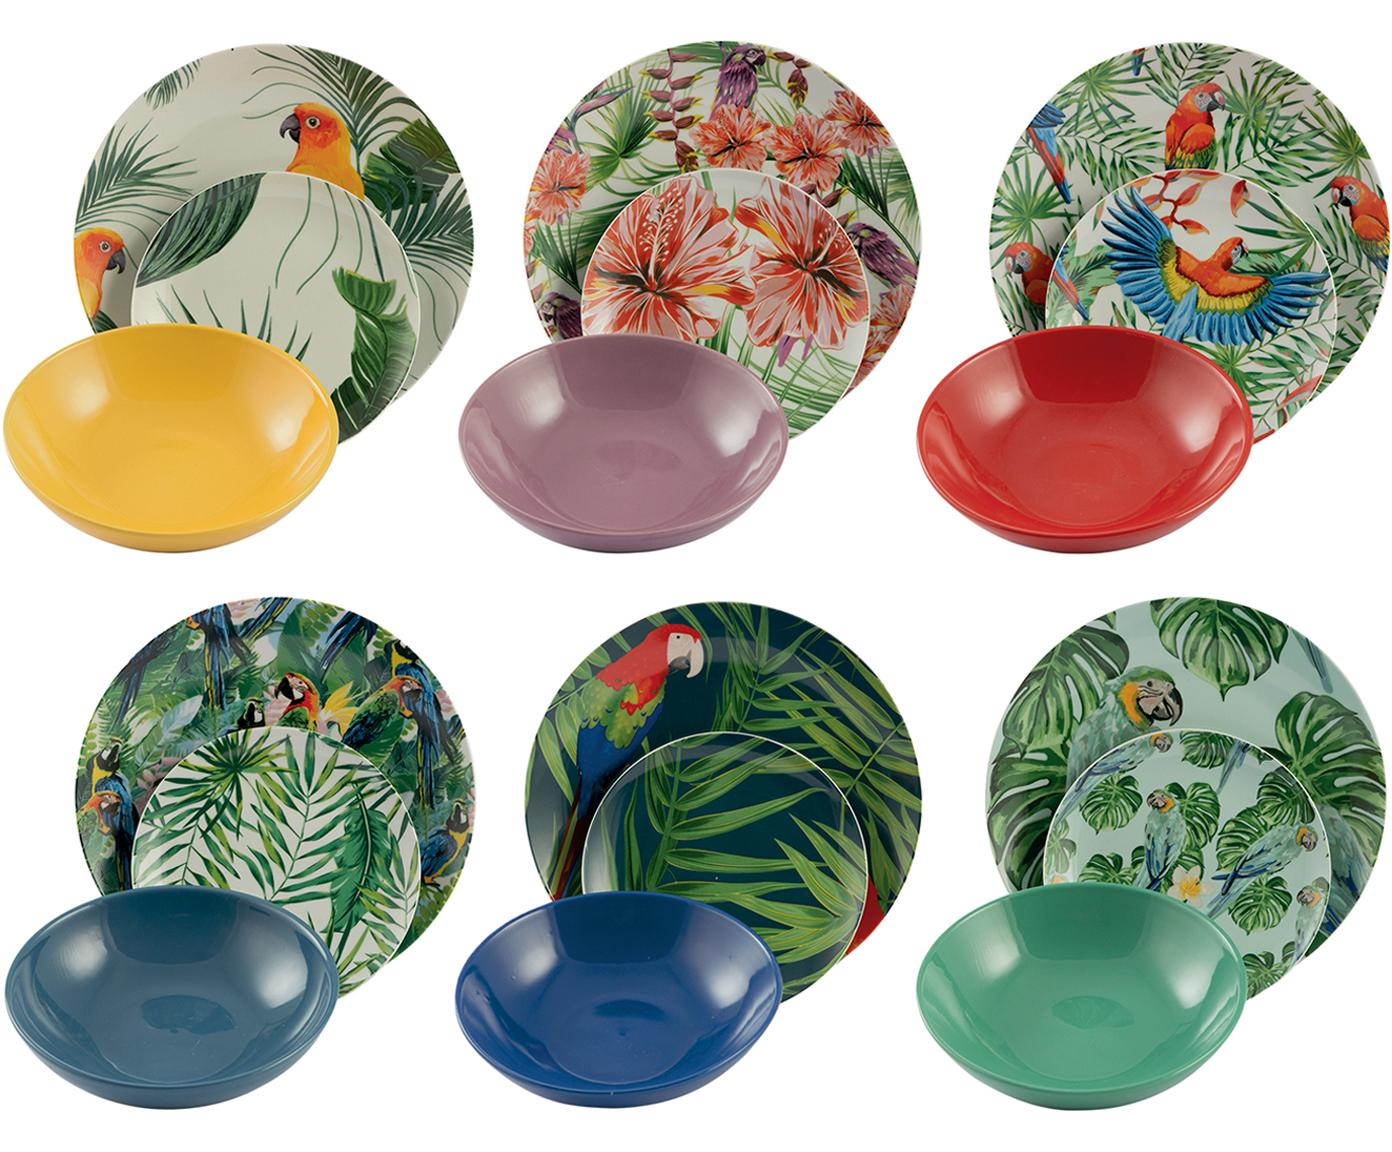 Set di piatti Parrot Jungle, 18 pz., Porcellana, Multicolore, Diverse dimensioni